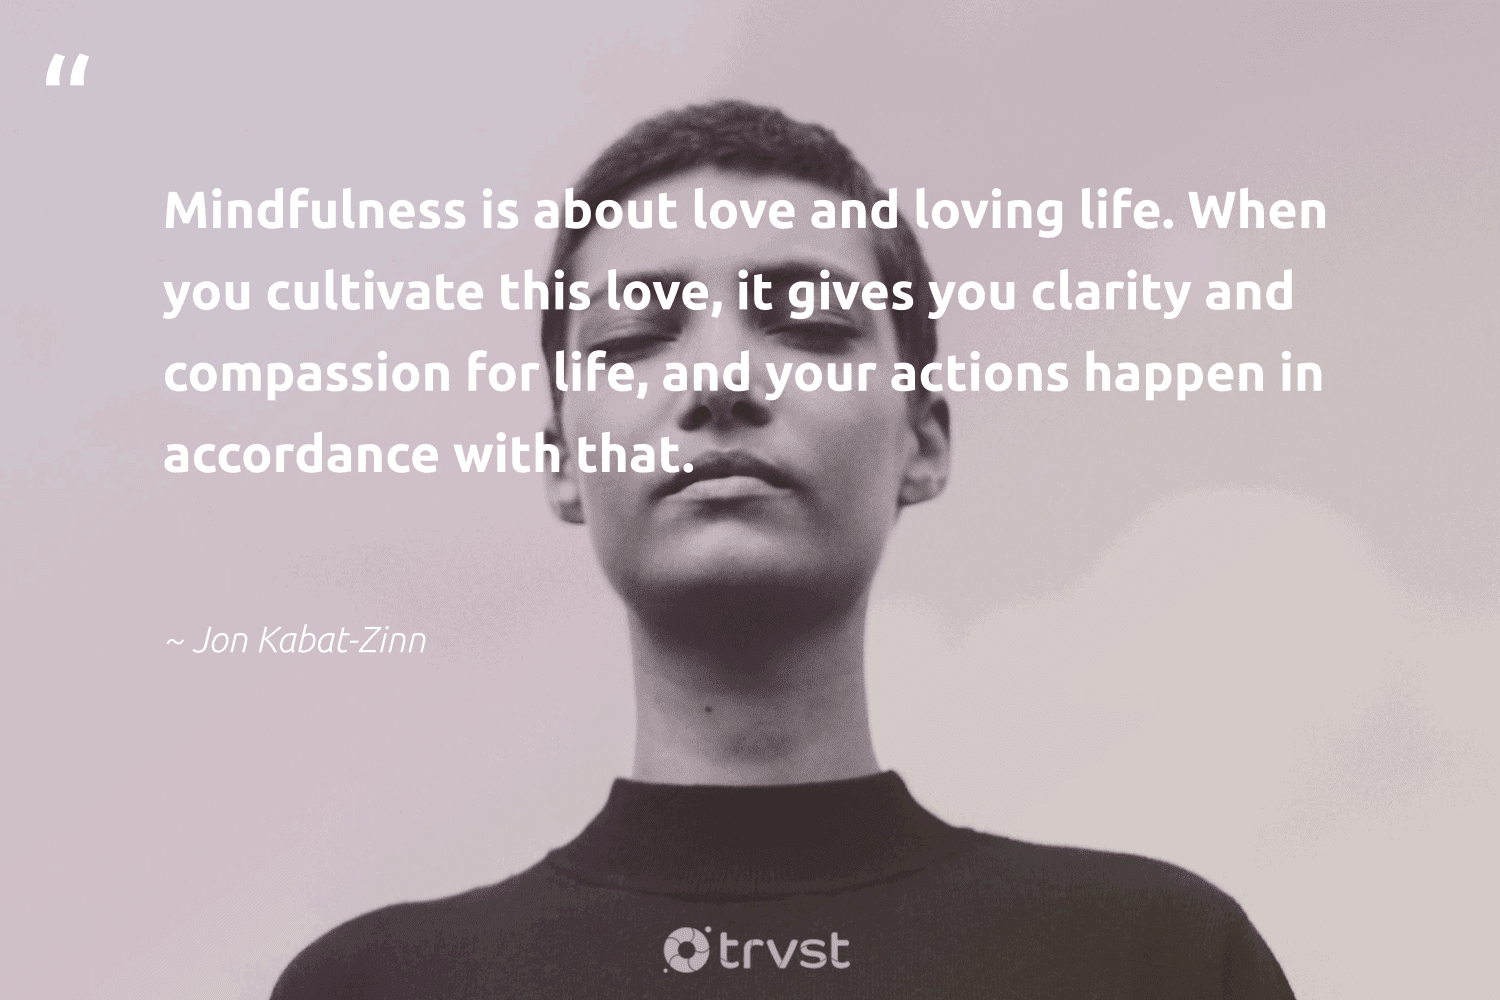 """""""Mindfulness is about love and loving life. When you cultivate this love, it gives you clarity and compassion for life, and your actions happen in accordance with that.""""  - Jon Kabat-Zinn #trvst #quotes #love #mindfulness #motivation #mentalheatlh #nevergiveup #planetearthfirst #mindful #wellness #mindset #dosomething"""